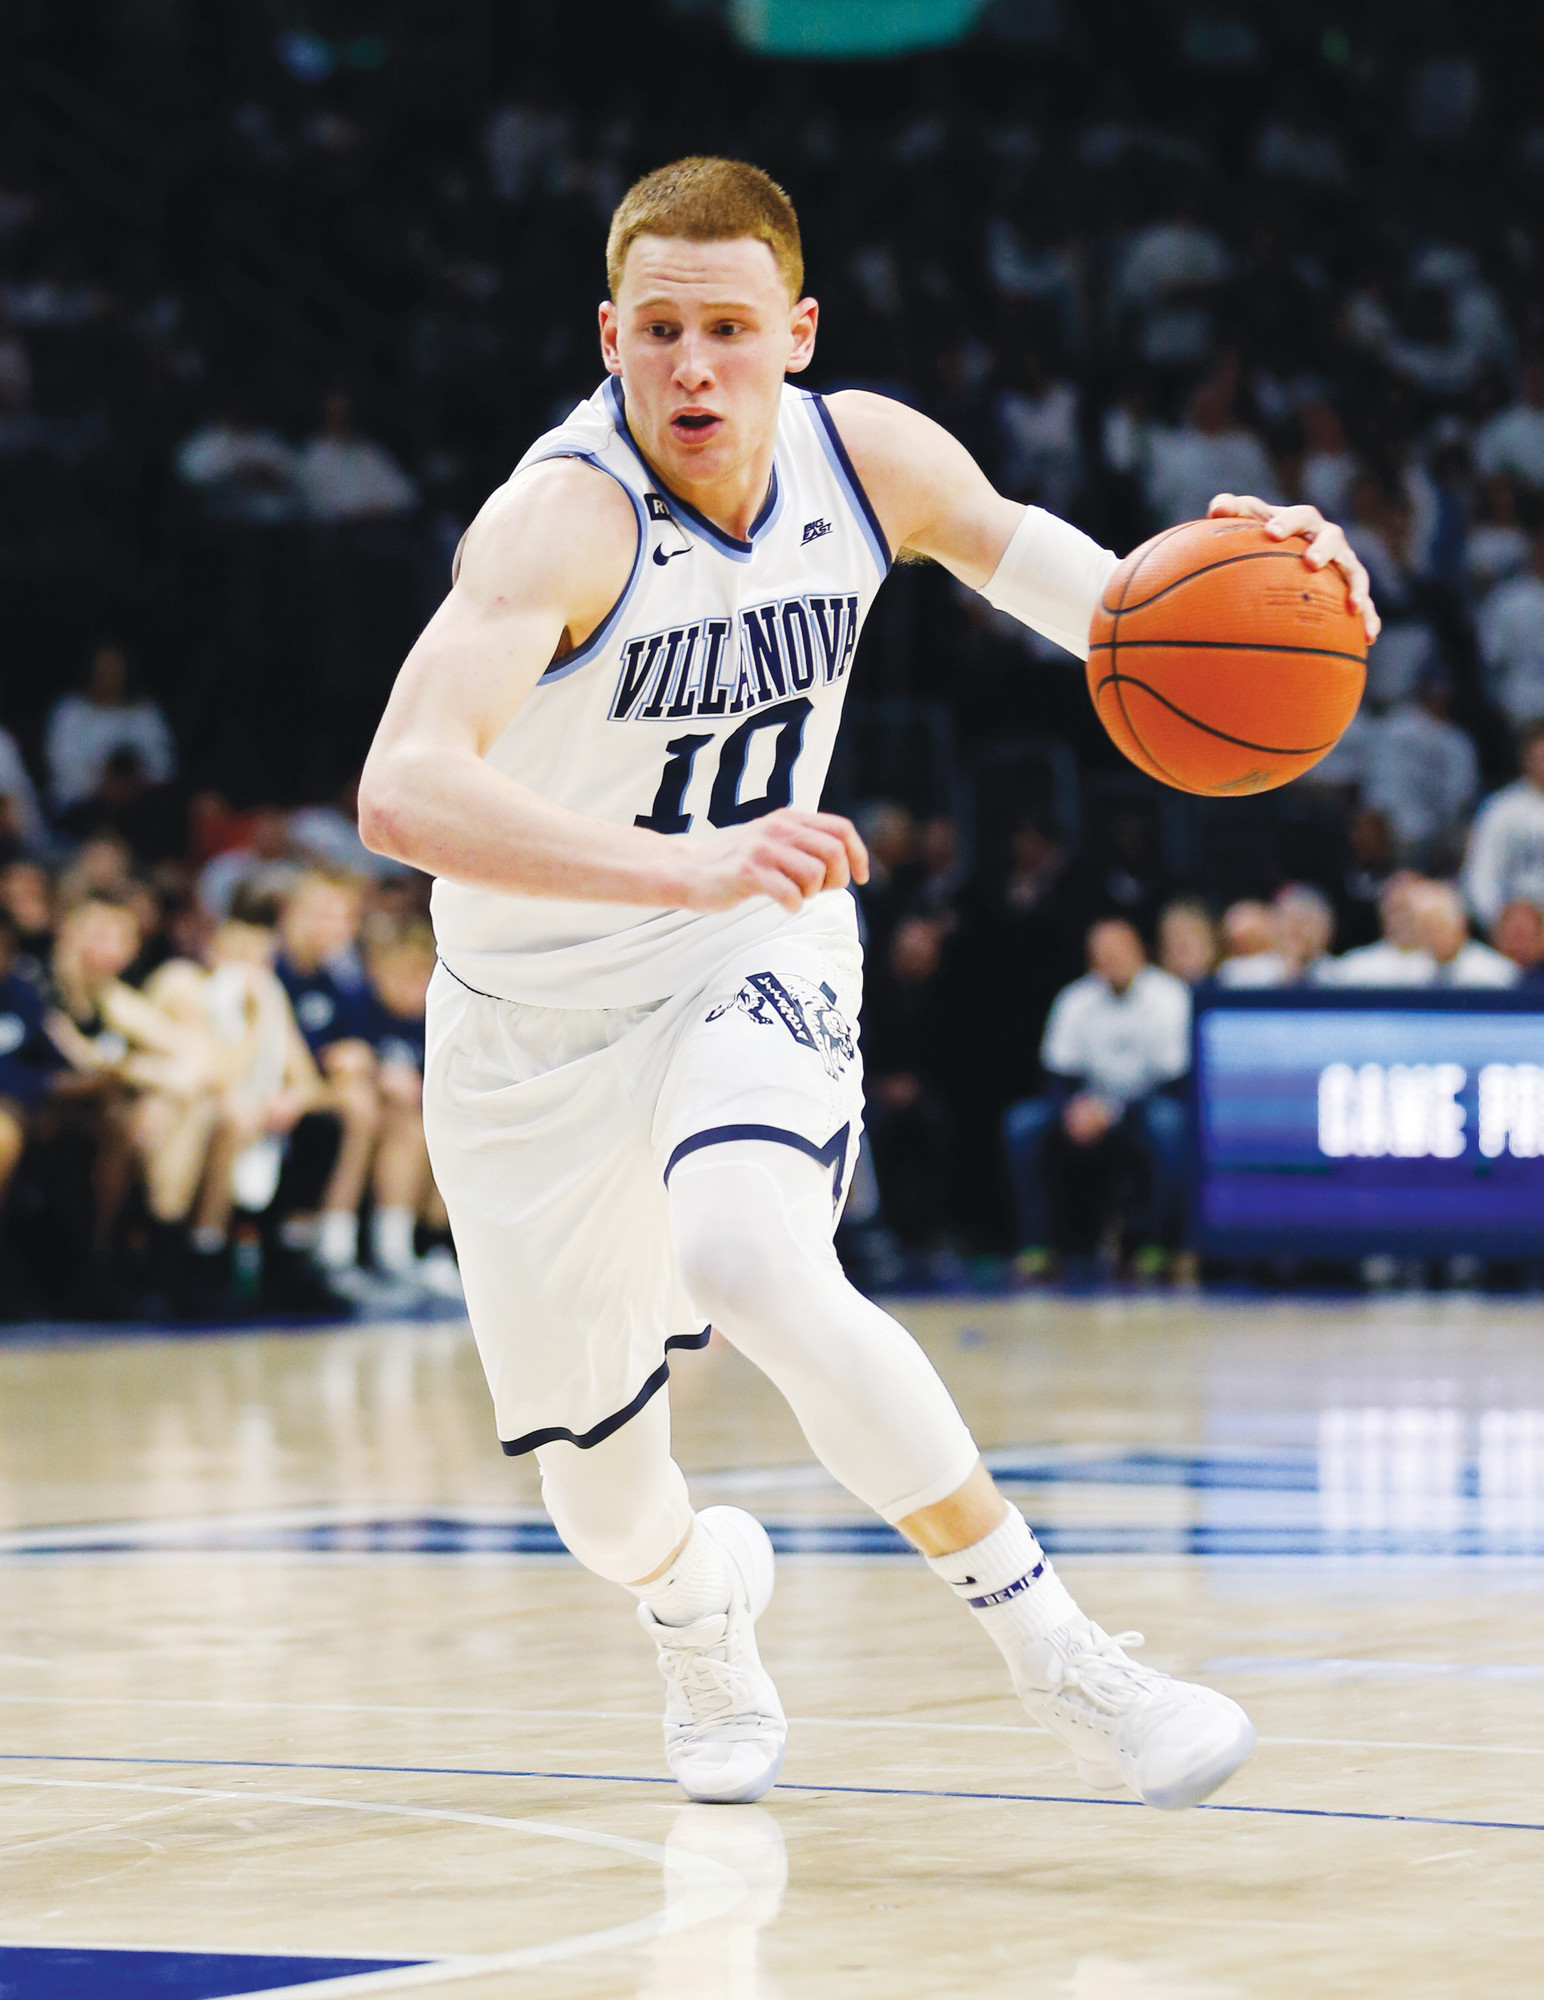 56bc593c46d7 Villanova guard Donte DiVincenzo (10) was the surprise star of the NCAA  championship game